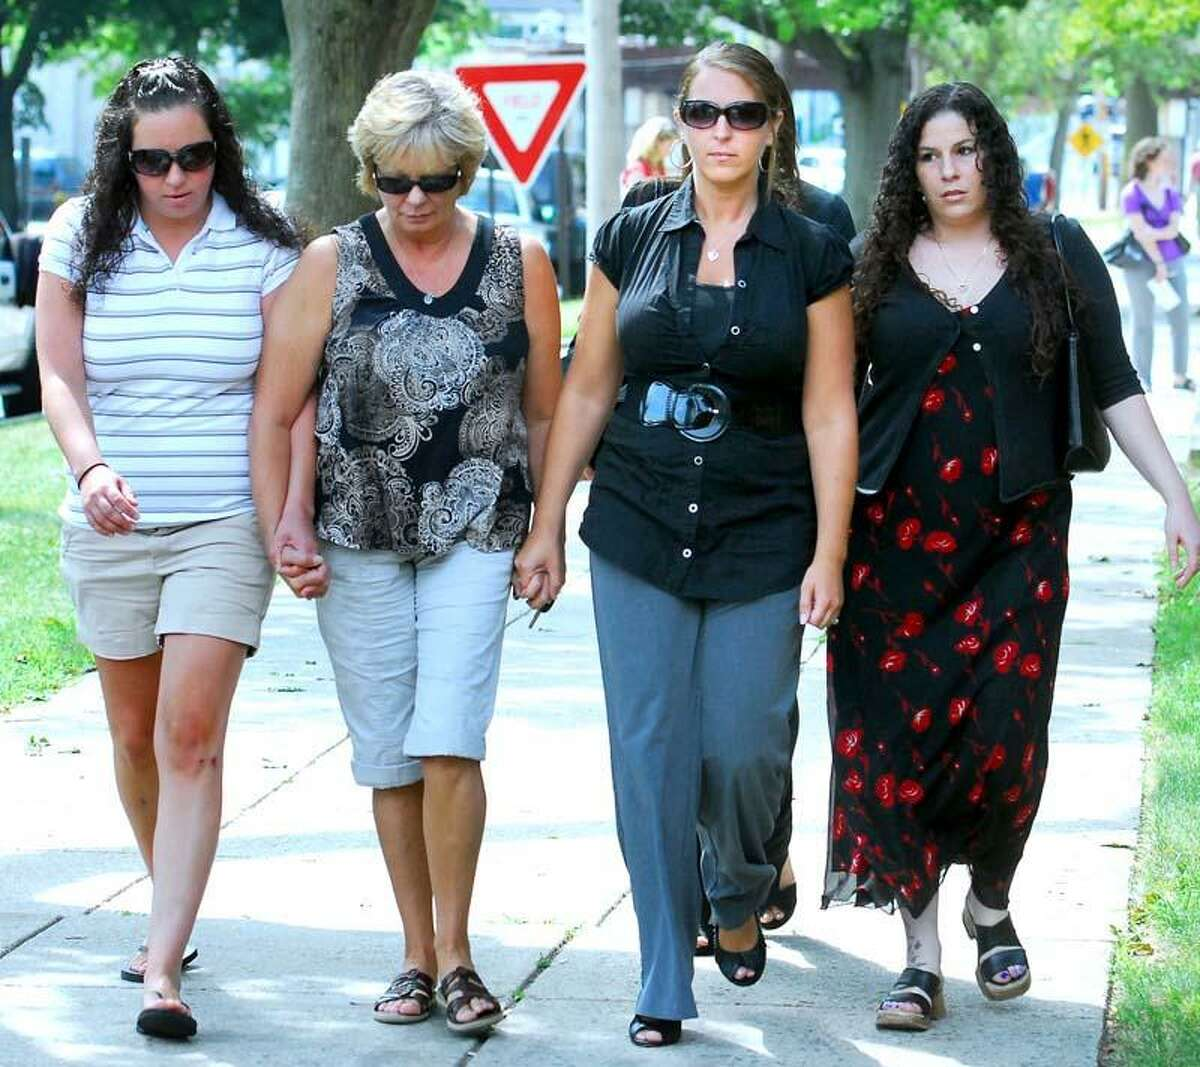 Deann Uberti (second from right) walks out of Superior Court in Milford on 8/5/2011 with family after John Billingslea pleaded guilty to the murder and rape of her daughter, Ariana Uberti, in 2009. Photo by Arnold Gold/New Haven Register